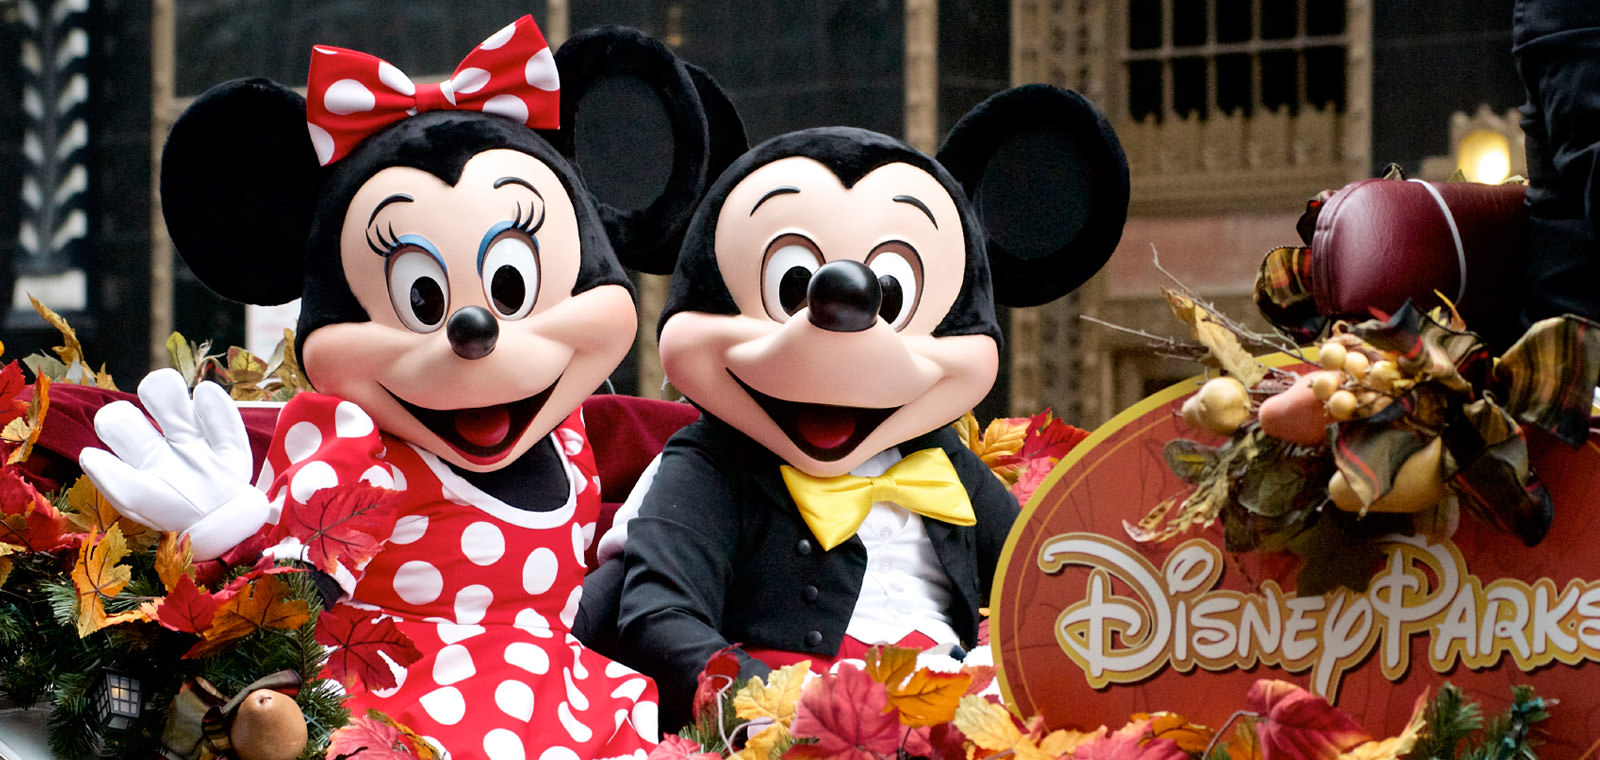 Micky and Minnie - Real Estate Orlando FL